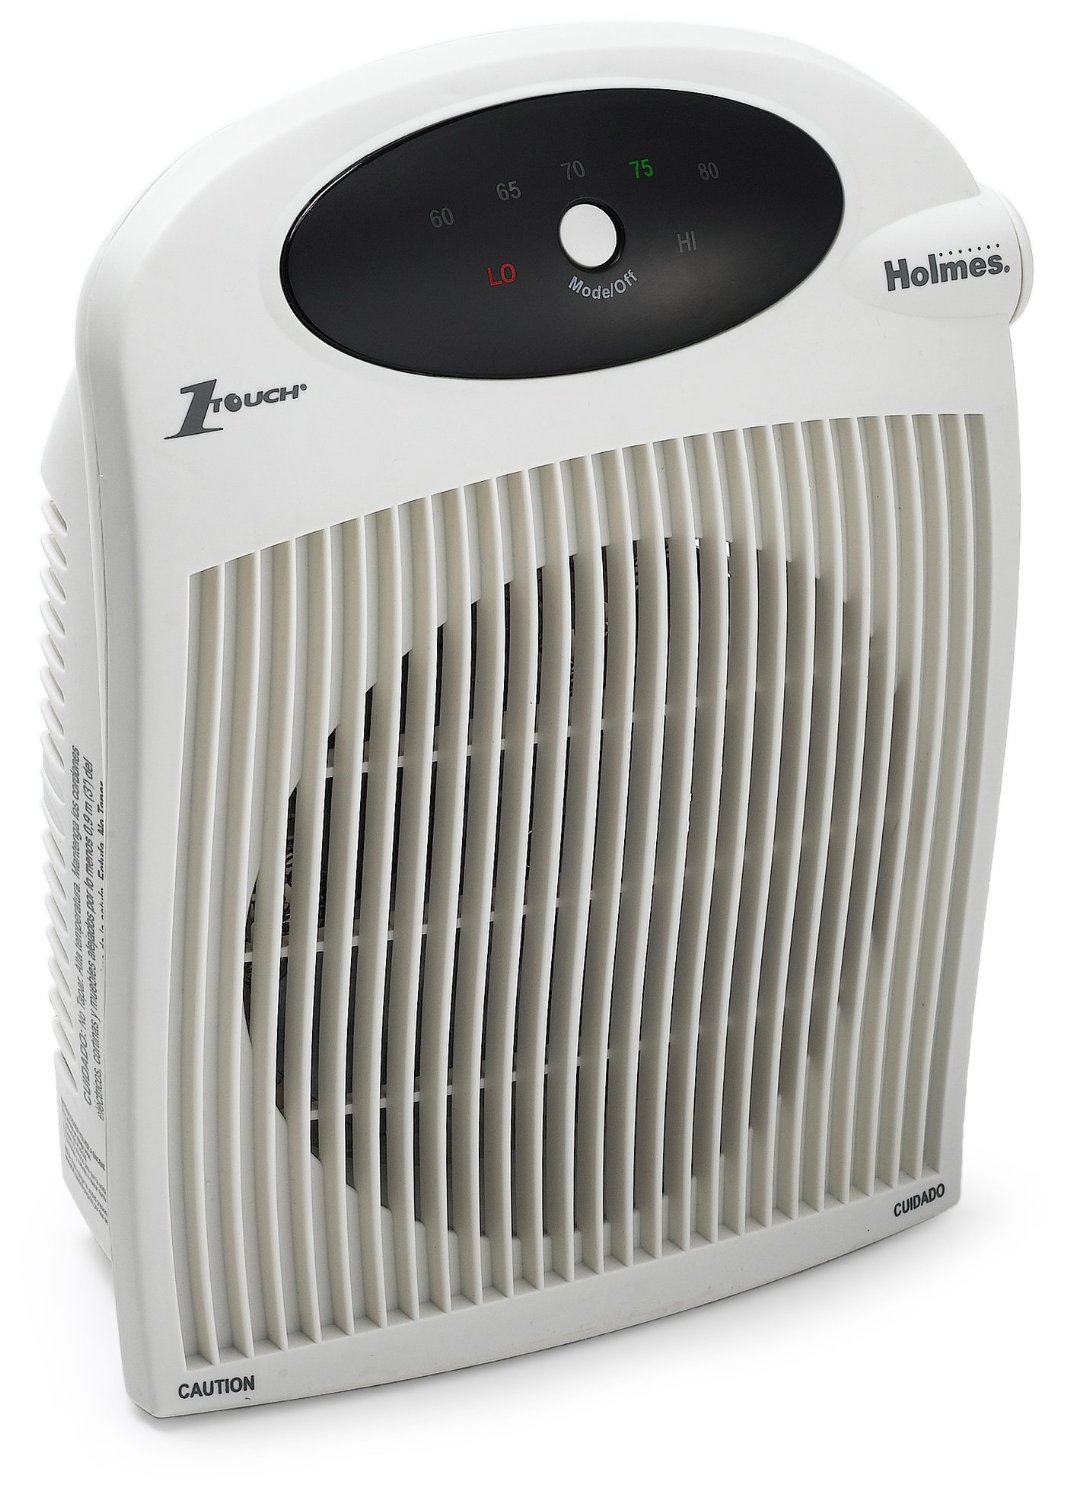 Small Bathroom Electric Wall Heaters: Wall Mount Space Heater To Warm Up Room Inside Your House